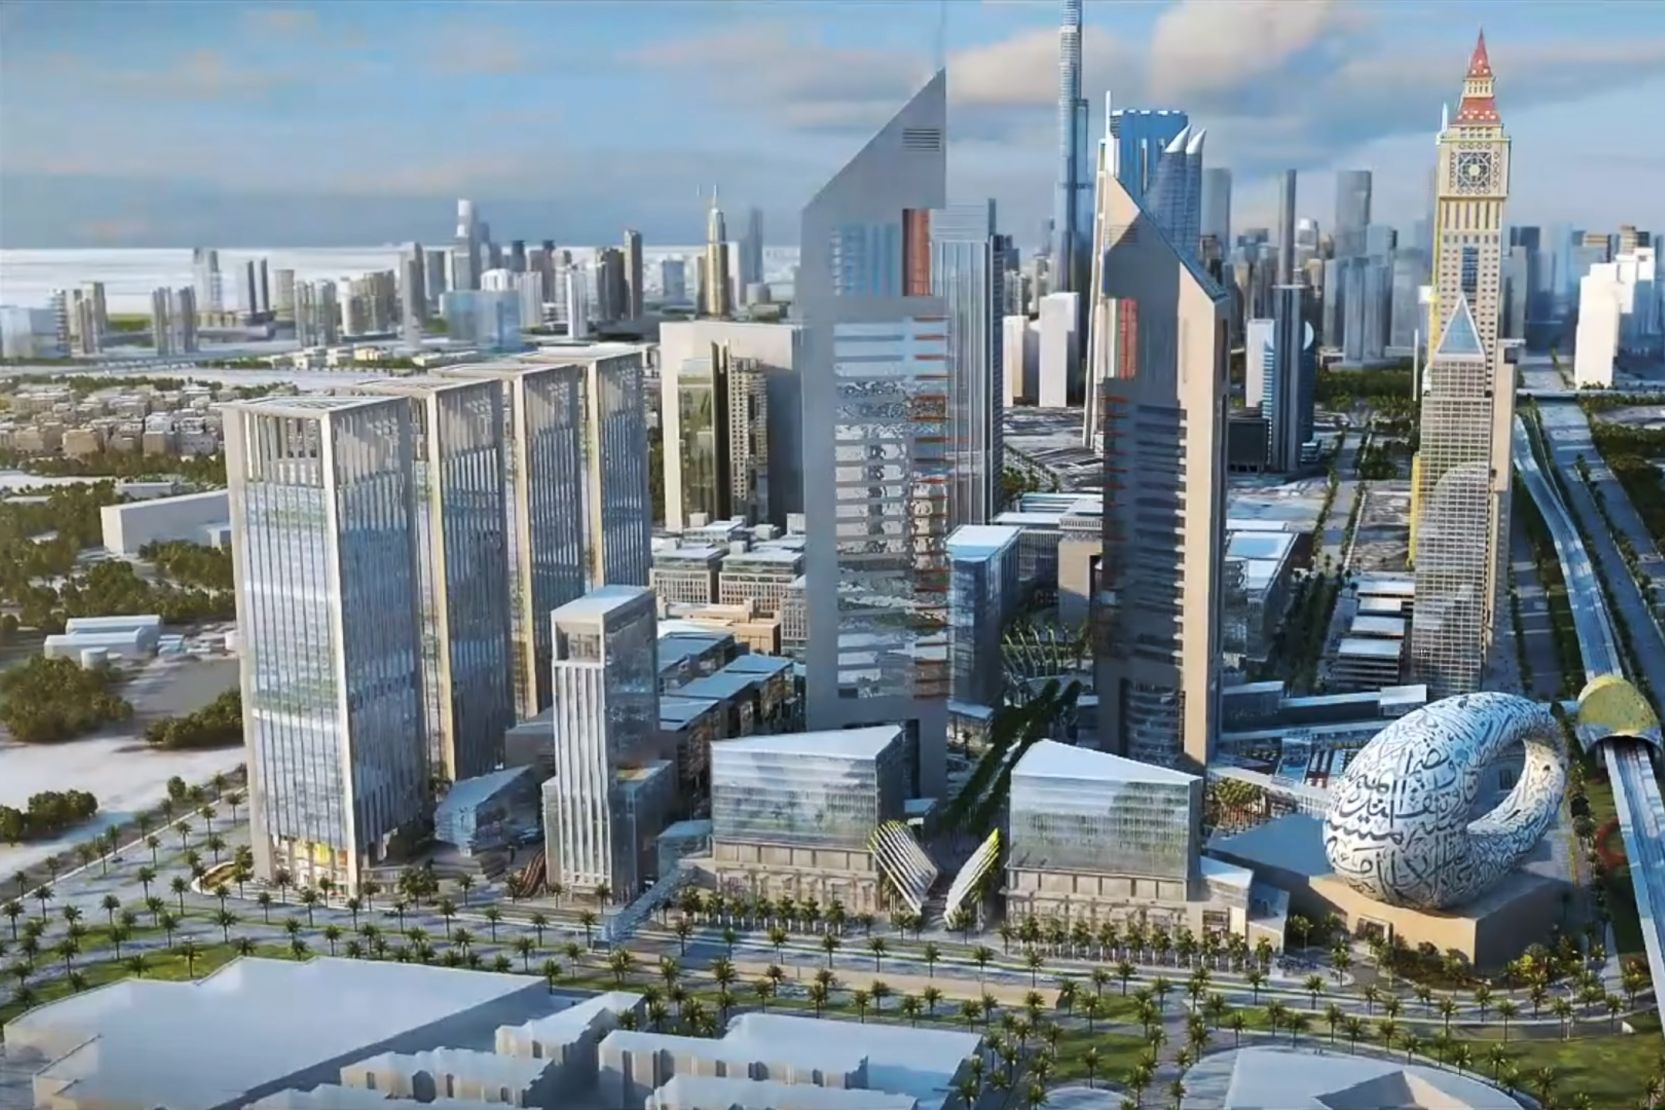 Emirates Towers Business Park, Dubai, artist's impression